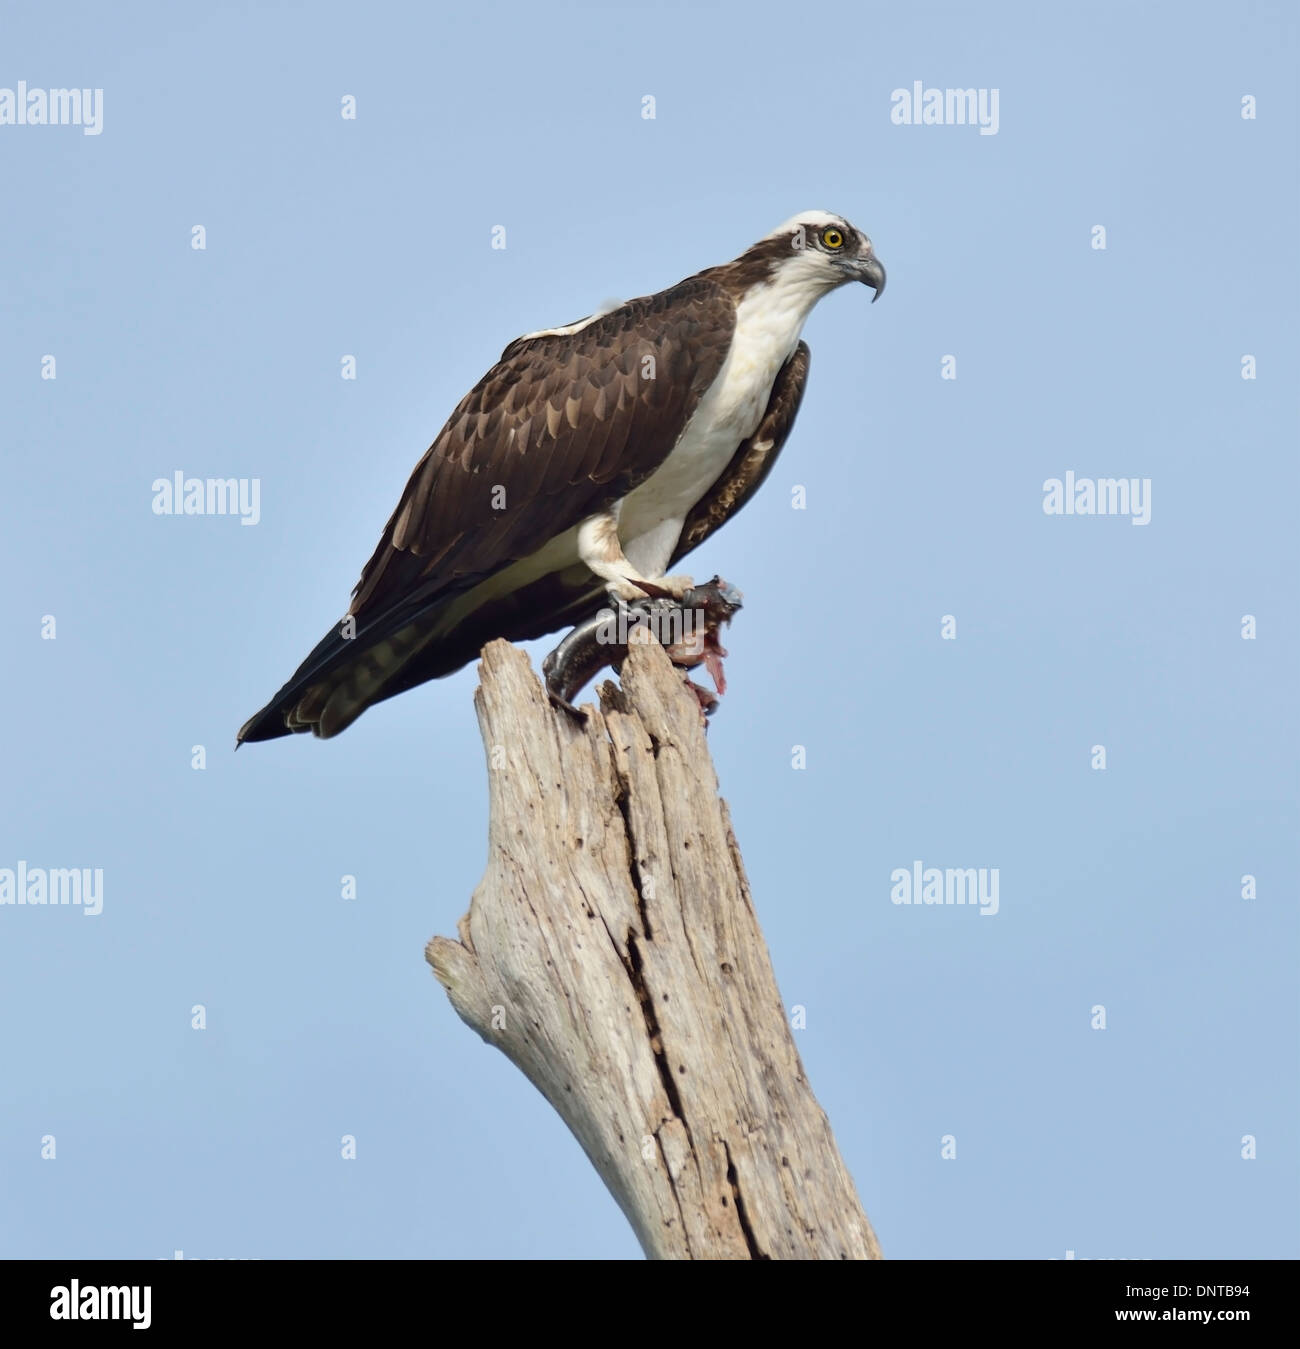 Osprey Eating Fish On A Dried Log - Stock Image